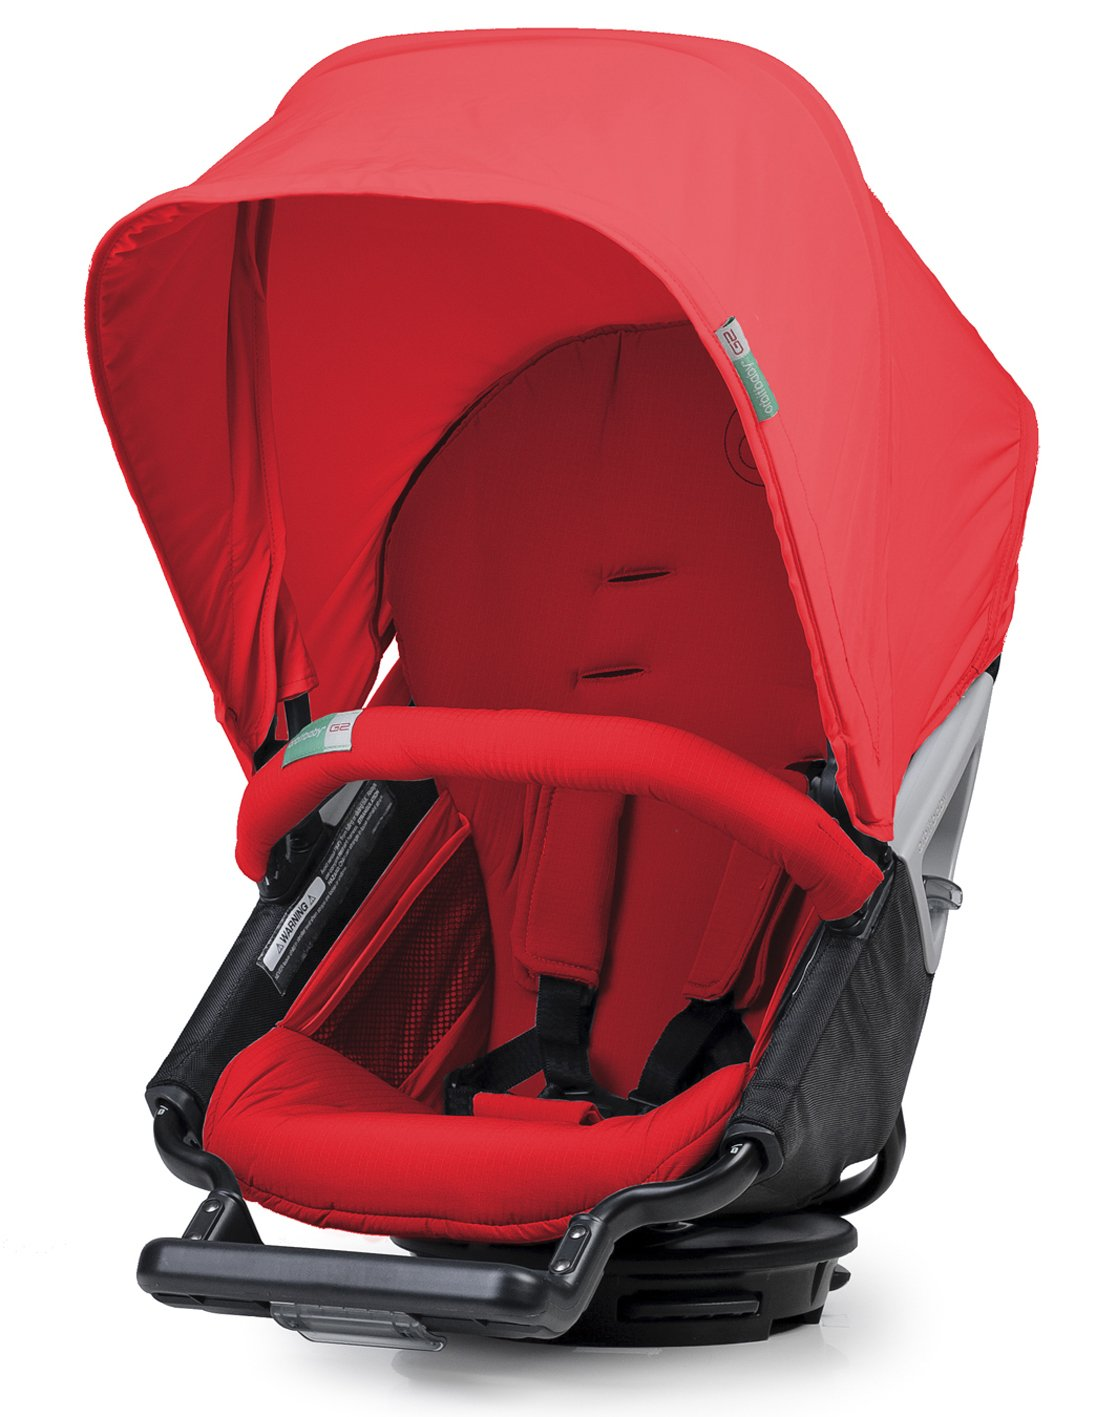 Amazon.com : Orbit Baby Color Pack for Stroller Seat G2, Red (Discontinued by Manufacturer) (Discontinued by Manufacturer) : Infant Car Seat Stroller Travel ...